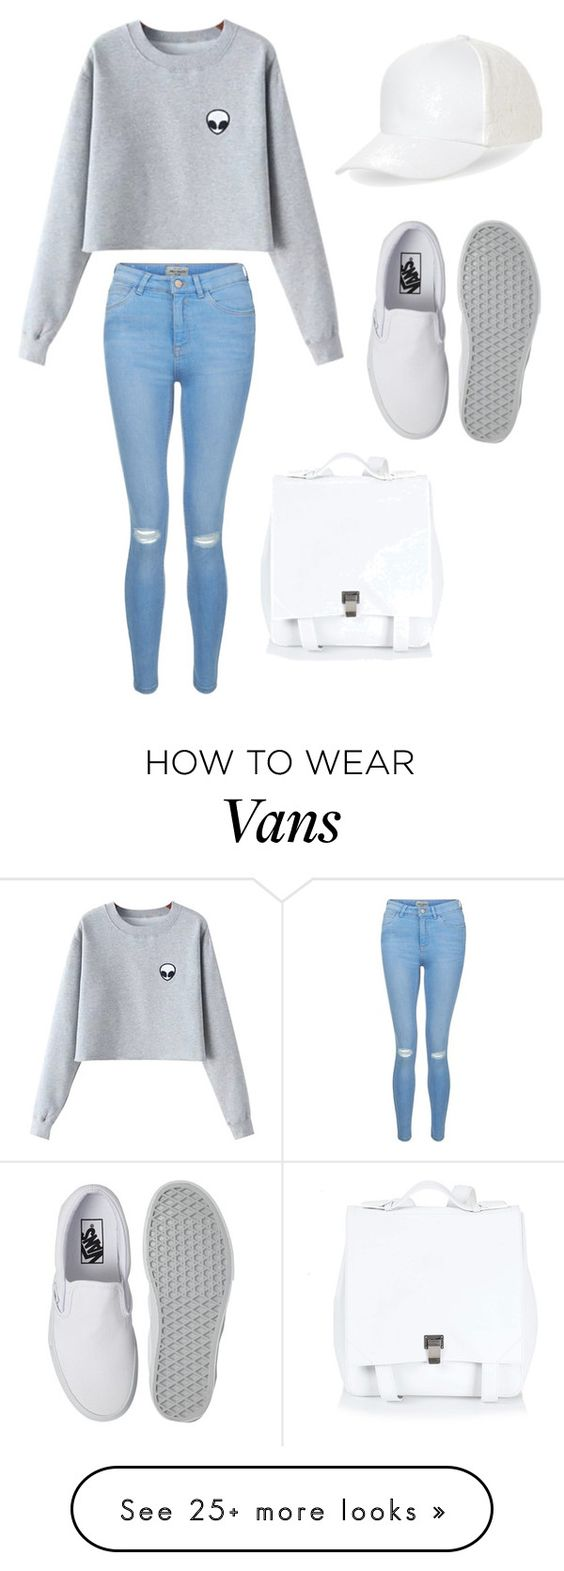 """white goes with everything"" by sammillerlucas on Polyvore featuring Chicnova Fashion, New Look, Vans, BCBGeneration, Proenza Schouler and sammillerlucas"